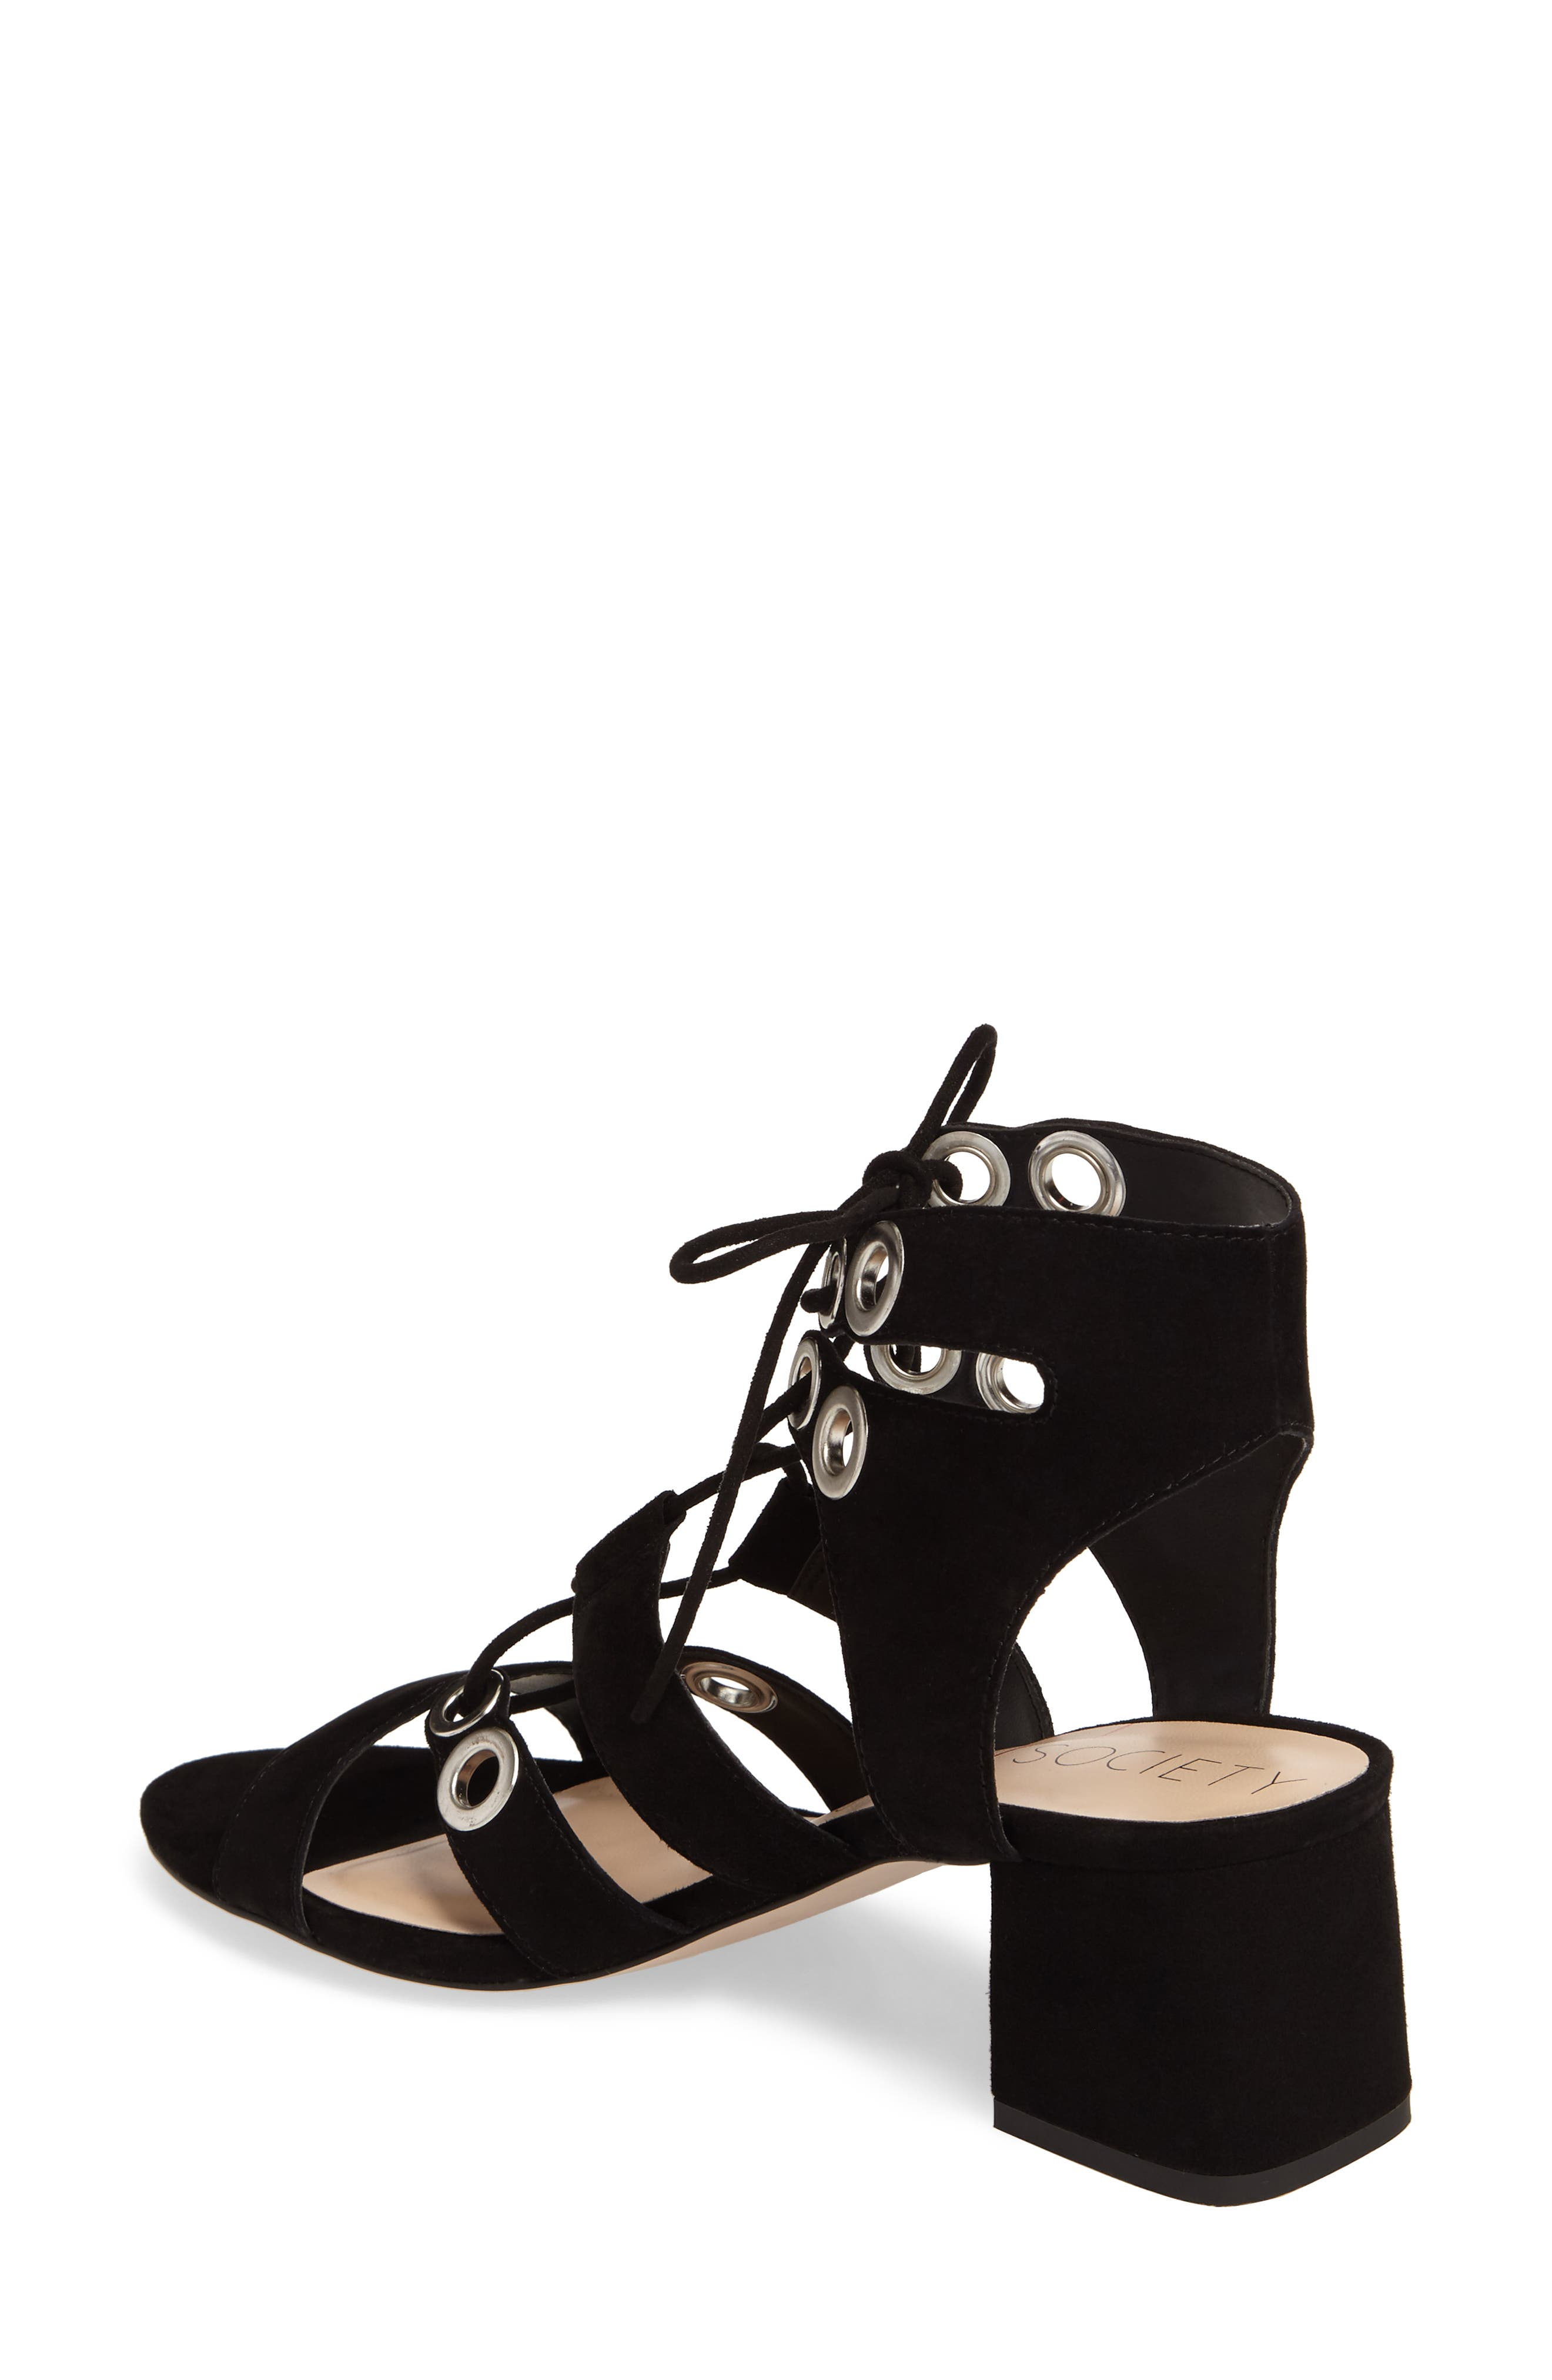 Rosemary Lace-Up Sandal,                             Alternate thumbnail 2, color,                             Black